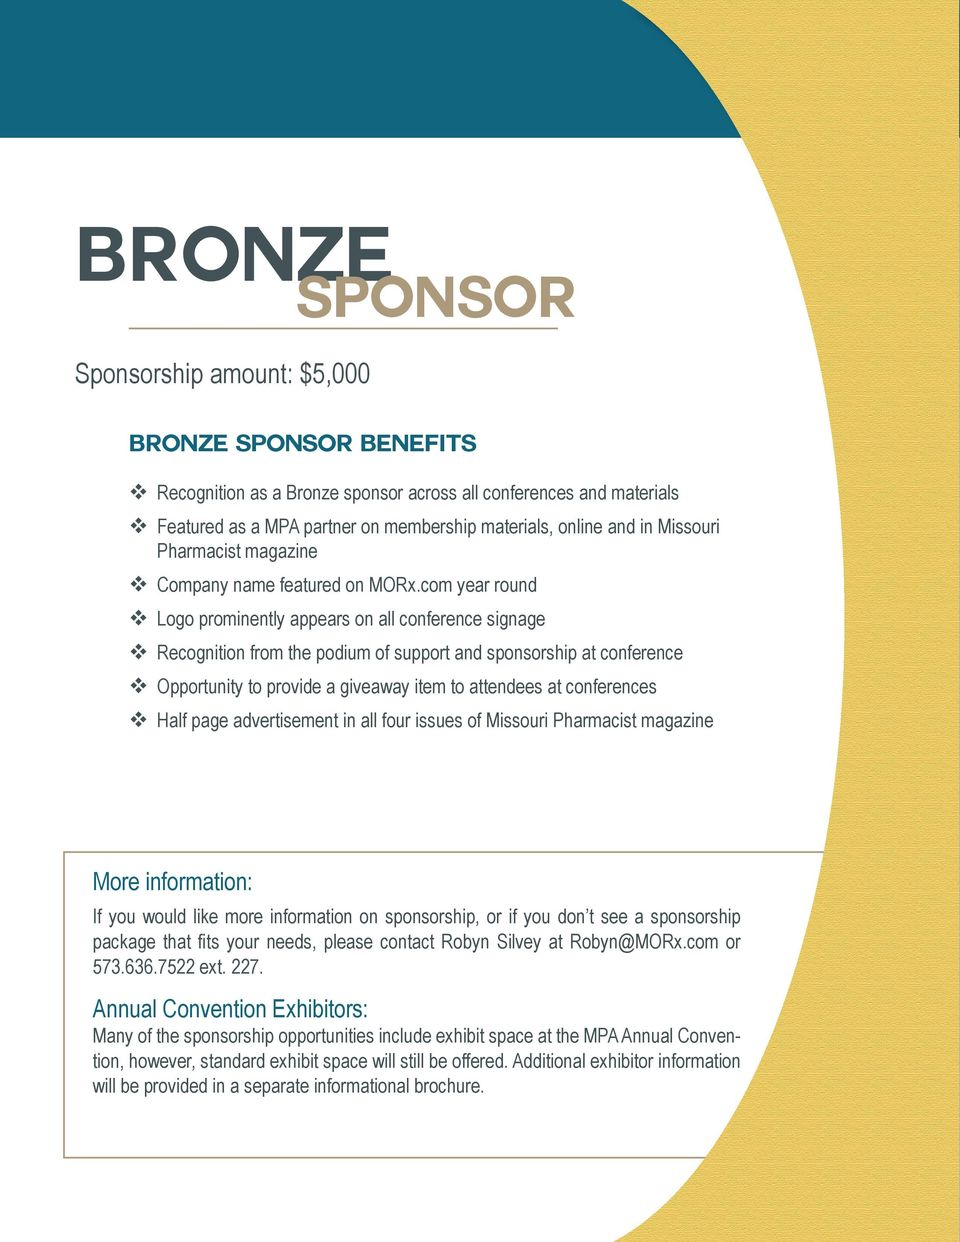 com year round Logo prominently appears on all conference signage Recognition from the podium of support and sponsorship at conference Opportunity to provide a giveaway item to attendees at